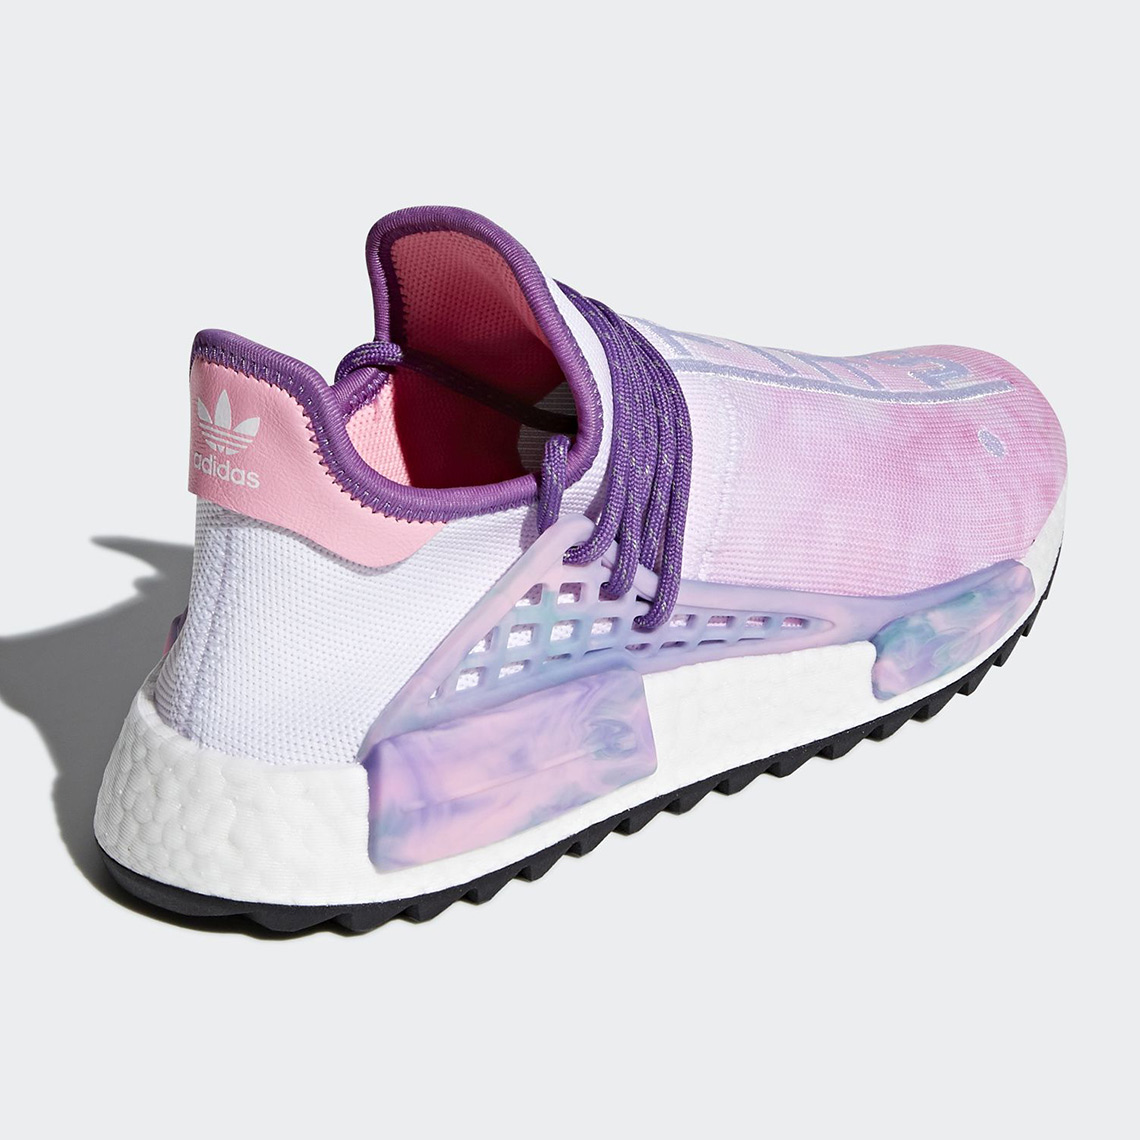 6170c90d6f0f6 Pharrell x adidas NMD Hu Trail Release Date  March 2nd